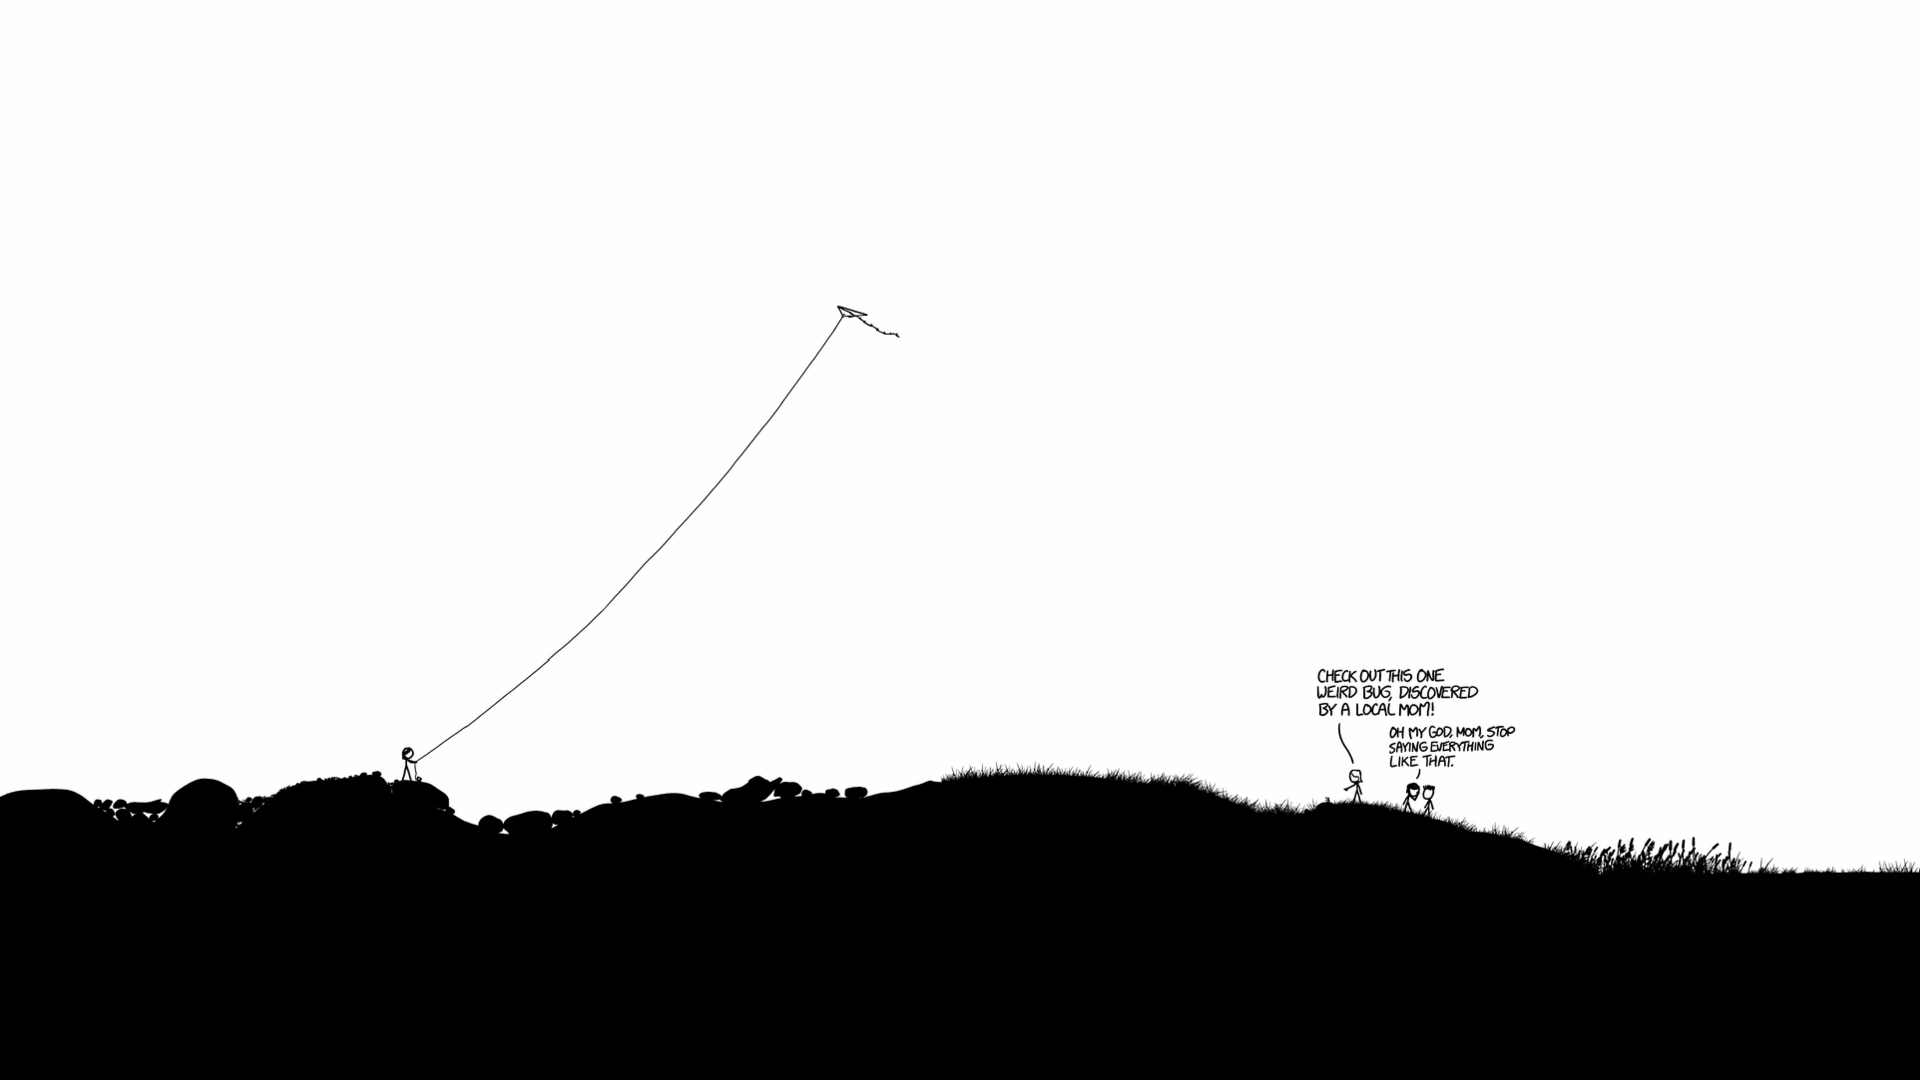 100 xkcd wallpapers collected from various sources   Album on Imgur 1920x1080